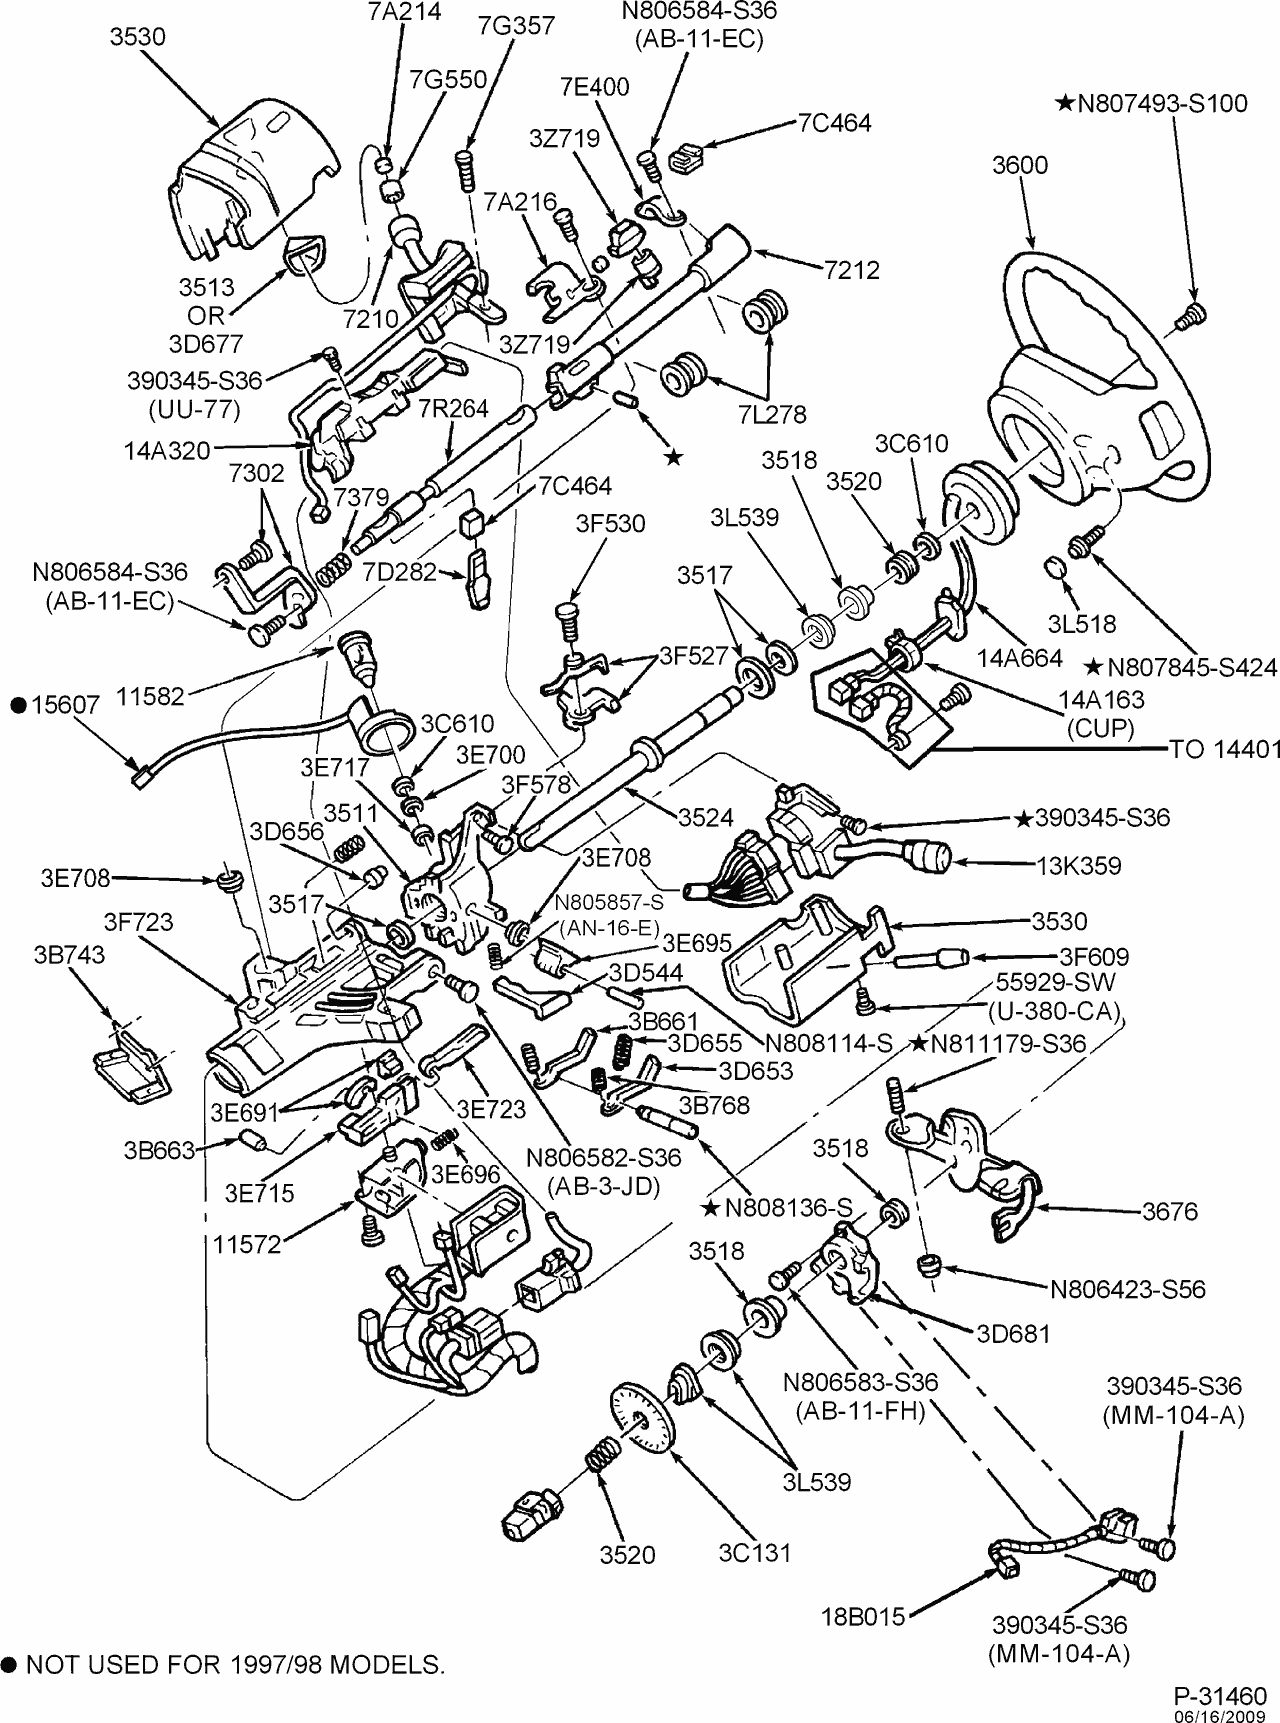 1997 Ford Expedition Xlt Wiring Diagram. Ford. Wiring Diagrams ...